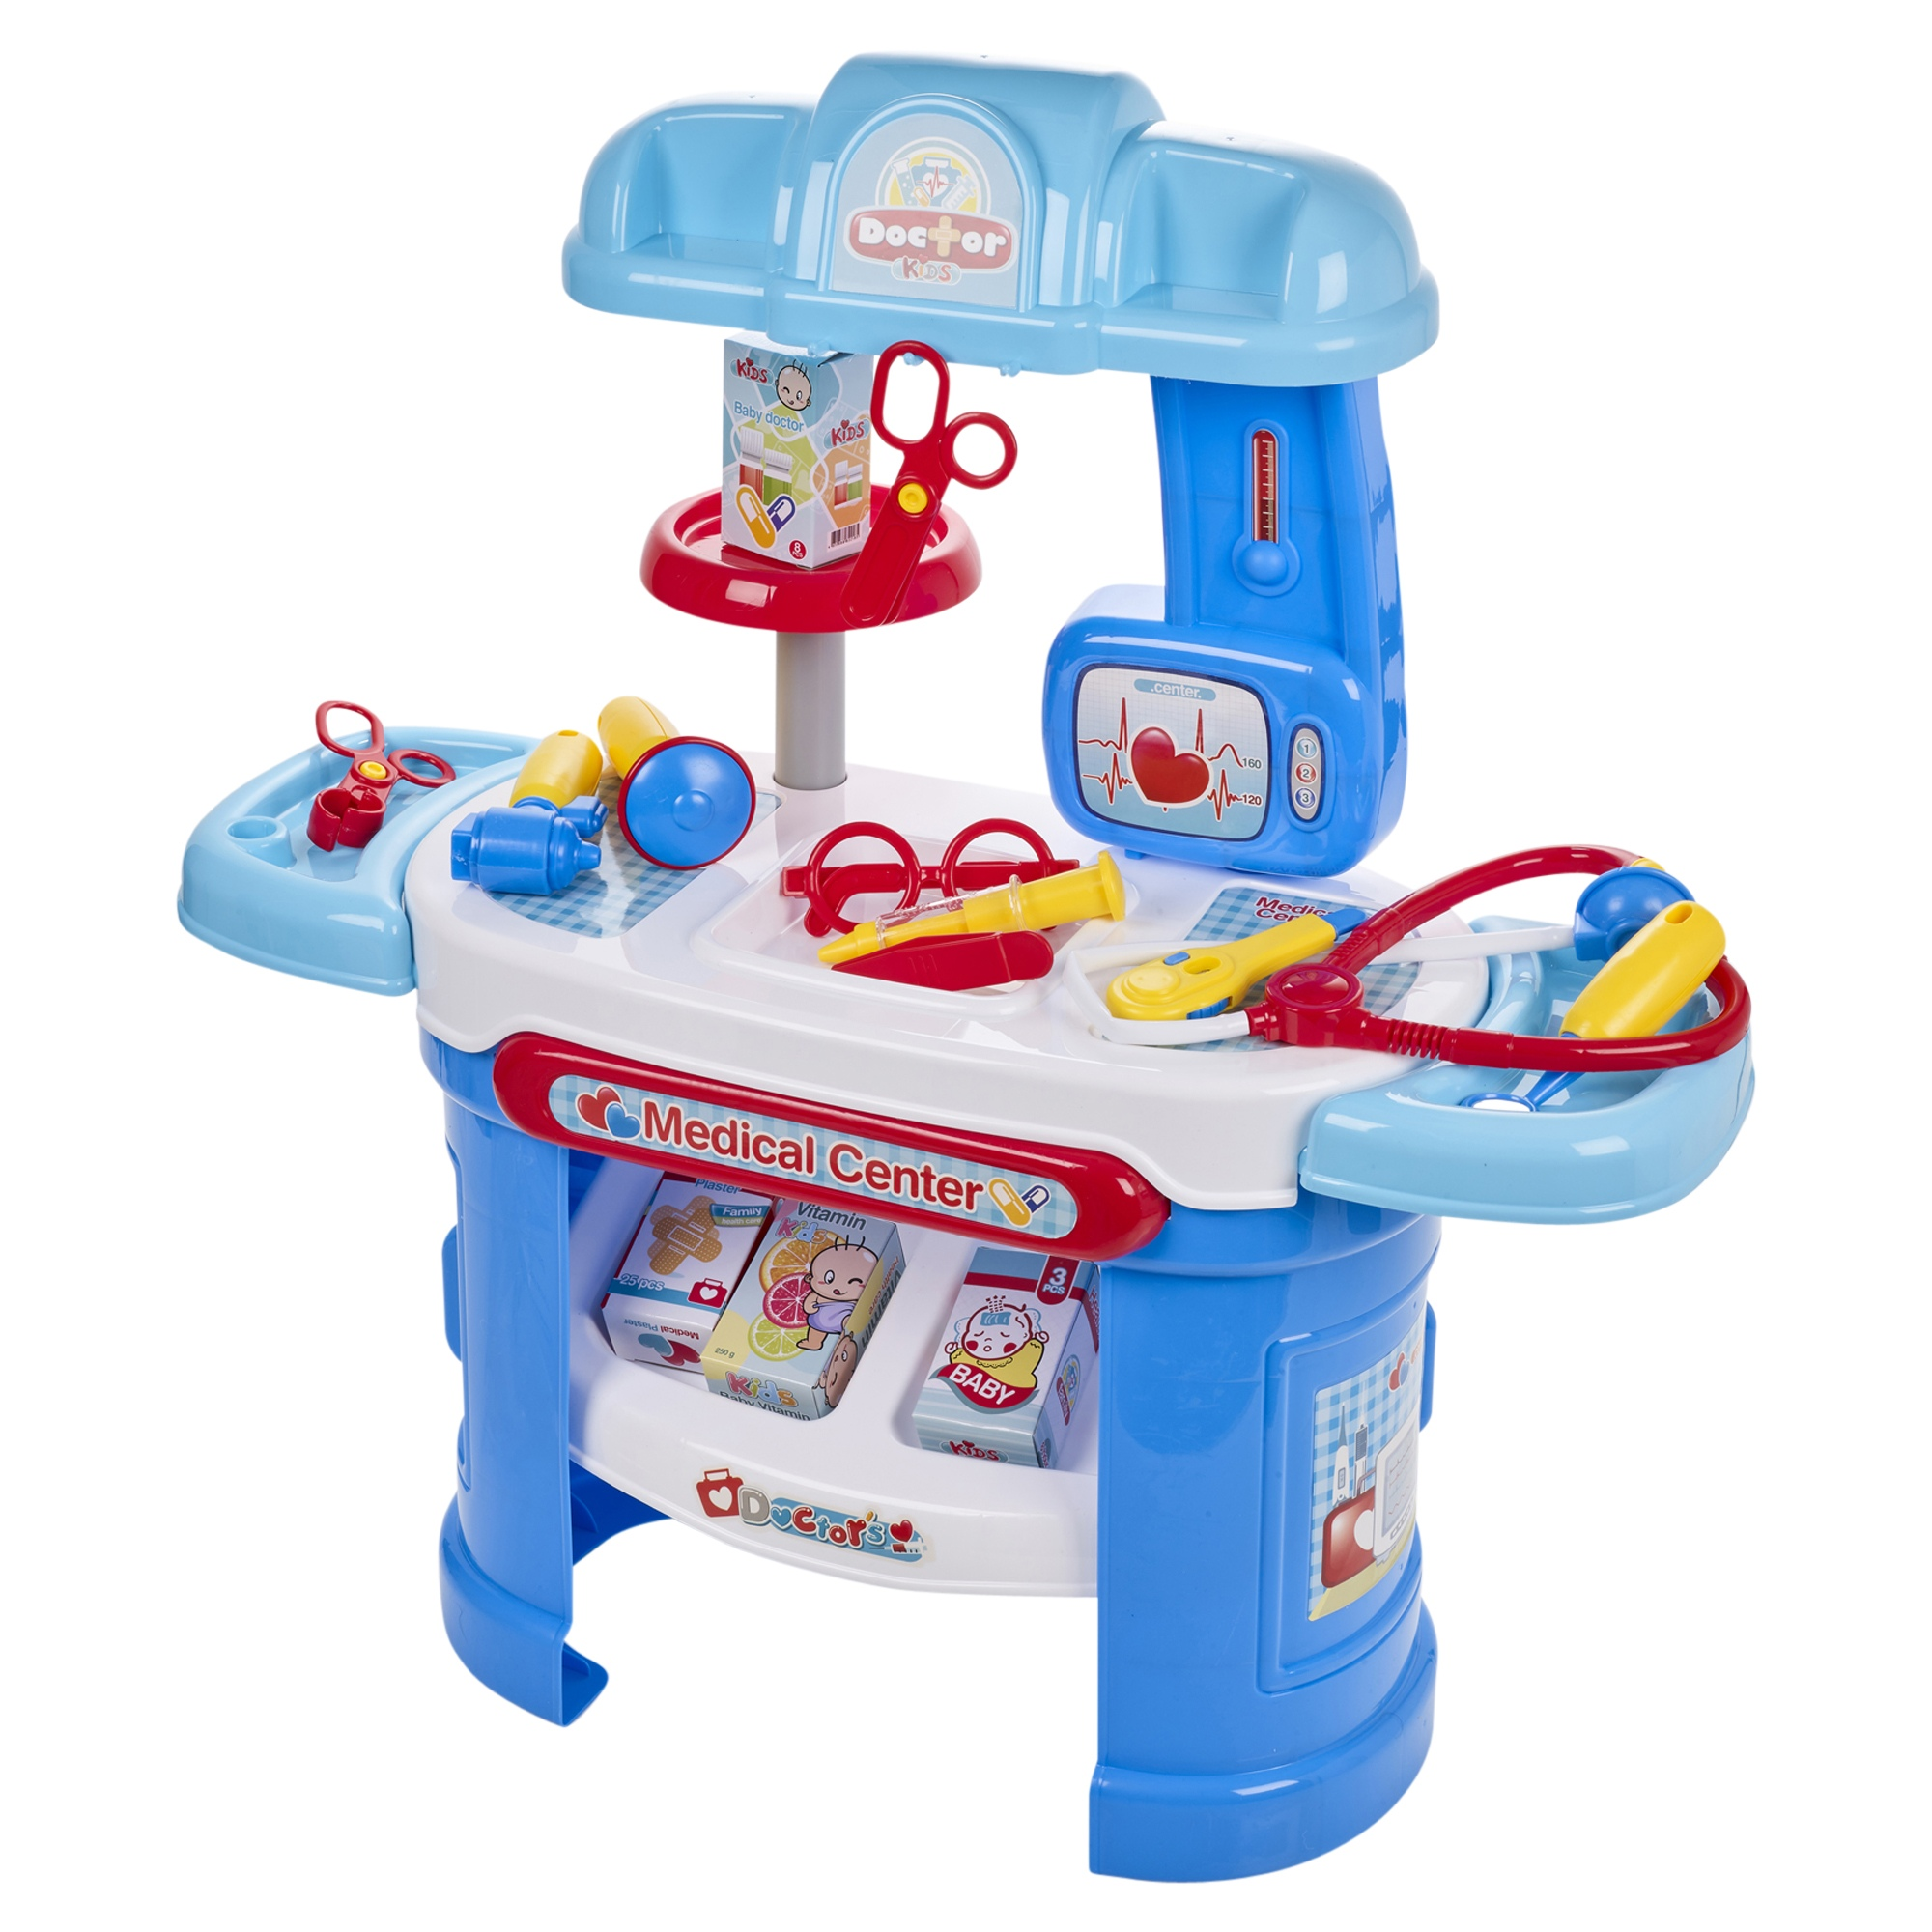 9b17b6121c6e0 Details about Doctor Medical Center Kids Children Play Set Role Play Nurse Medicine  Play Toy